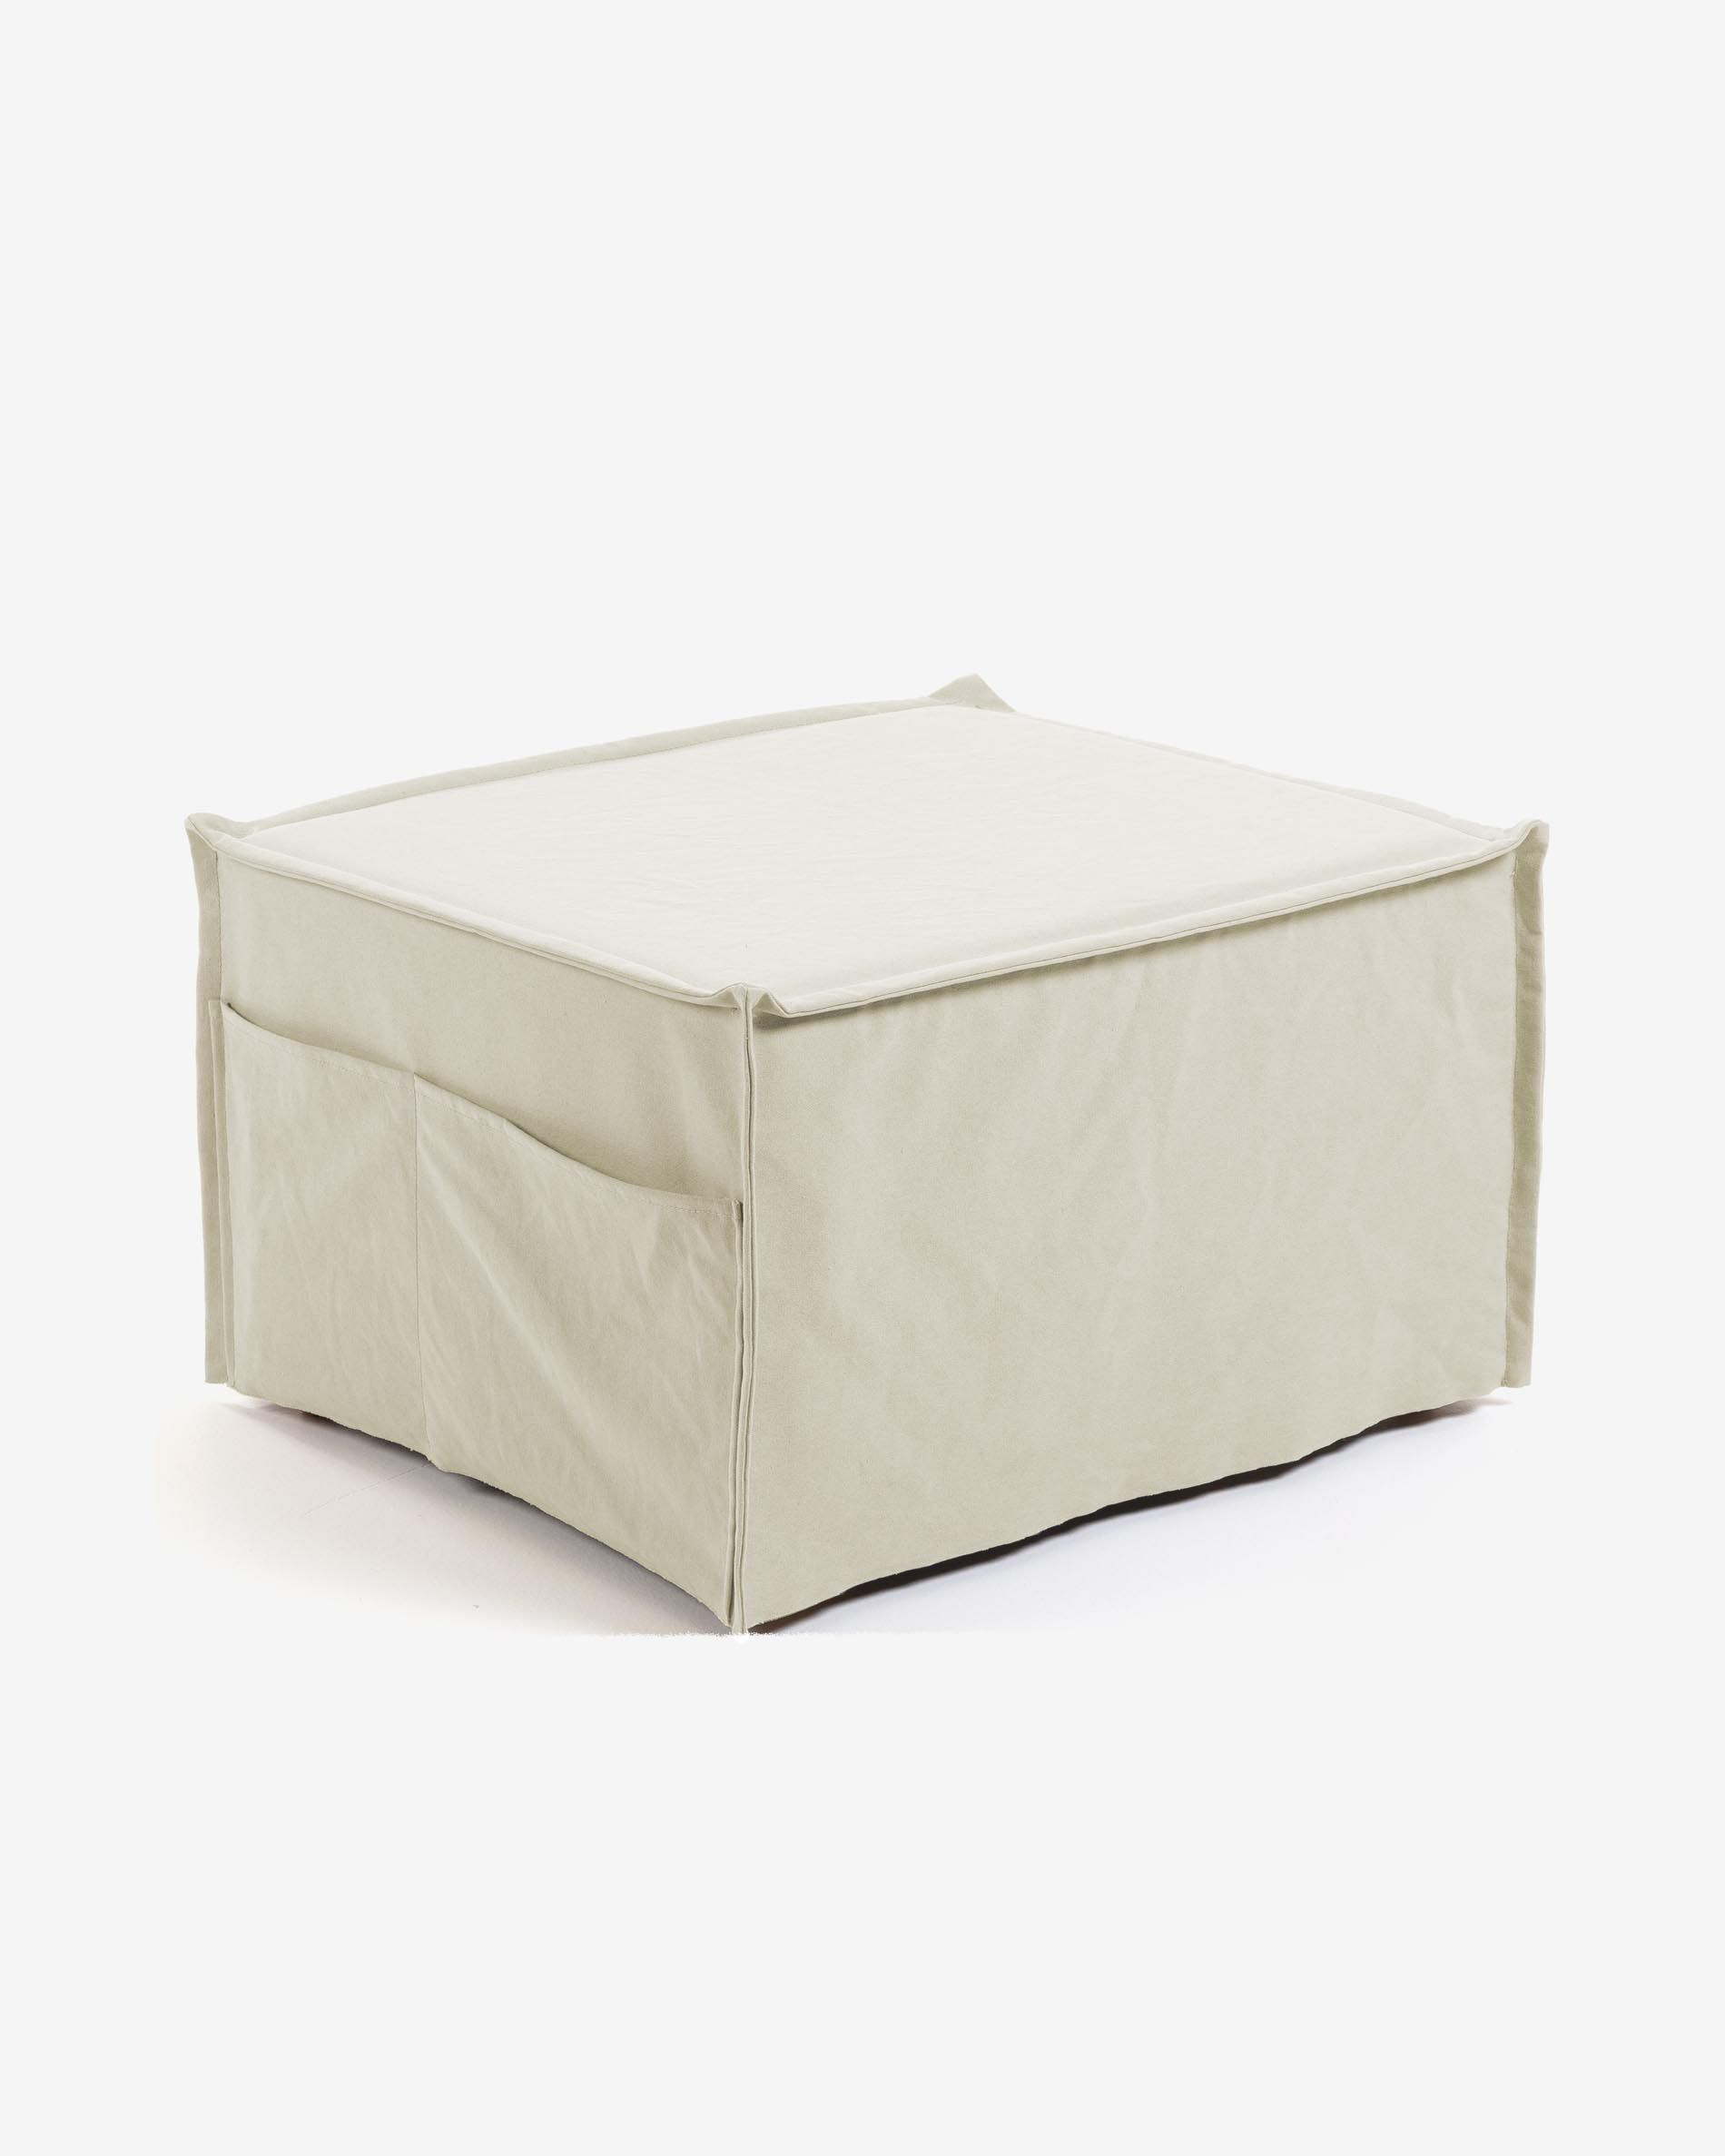 Blancho Storage Ottoman Collapsible Foldable Foot Rest Round Storag Ottoman Blue